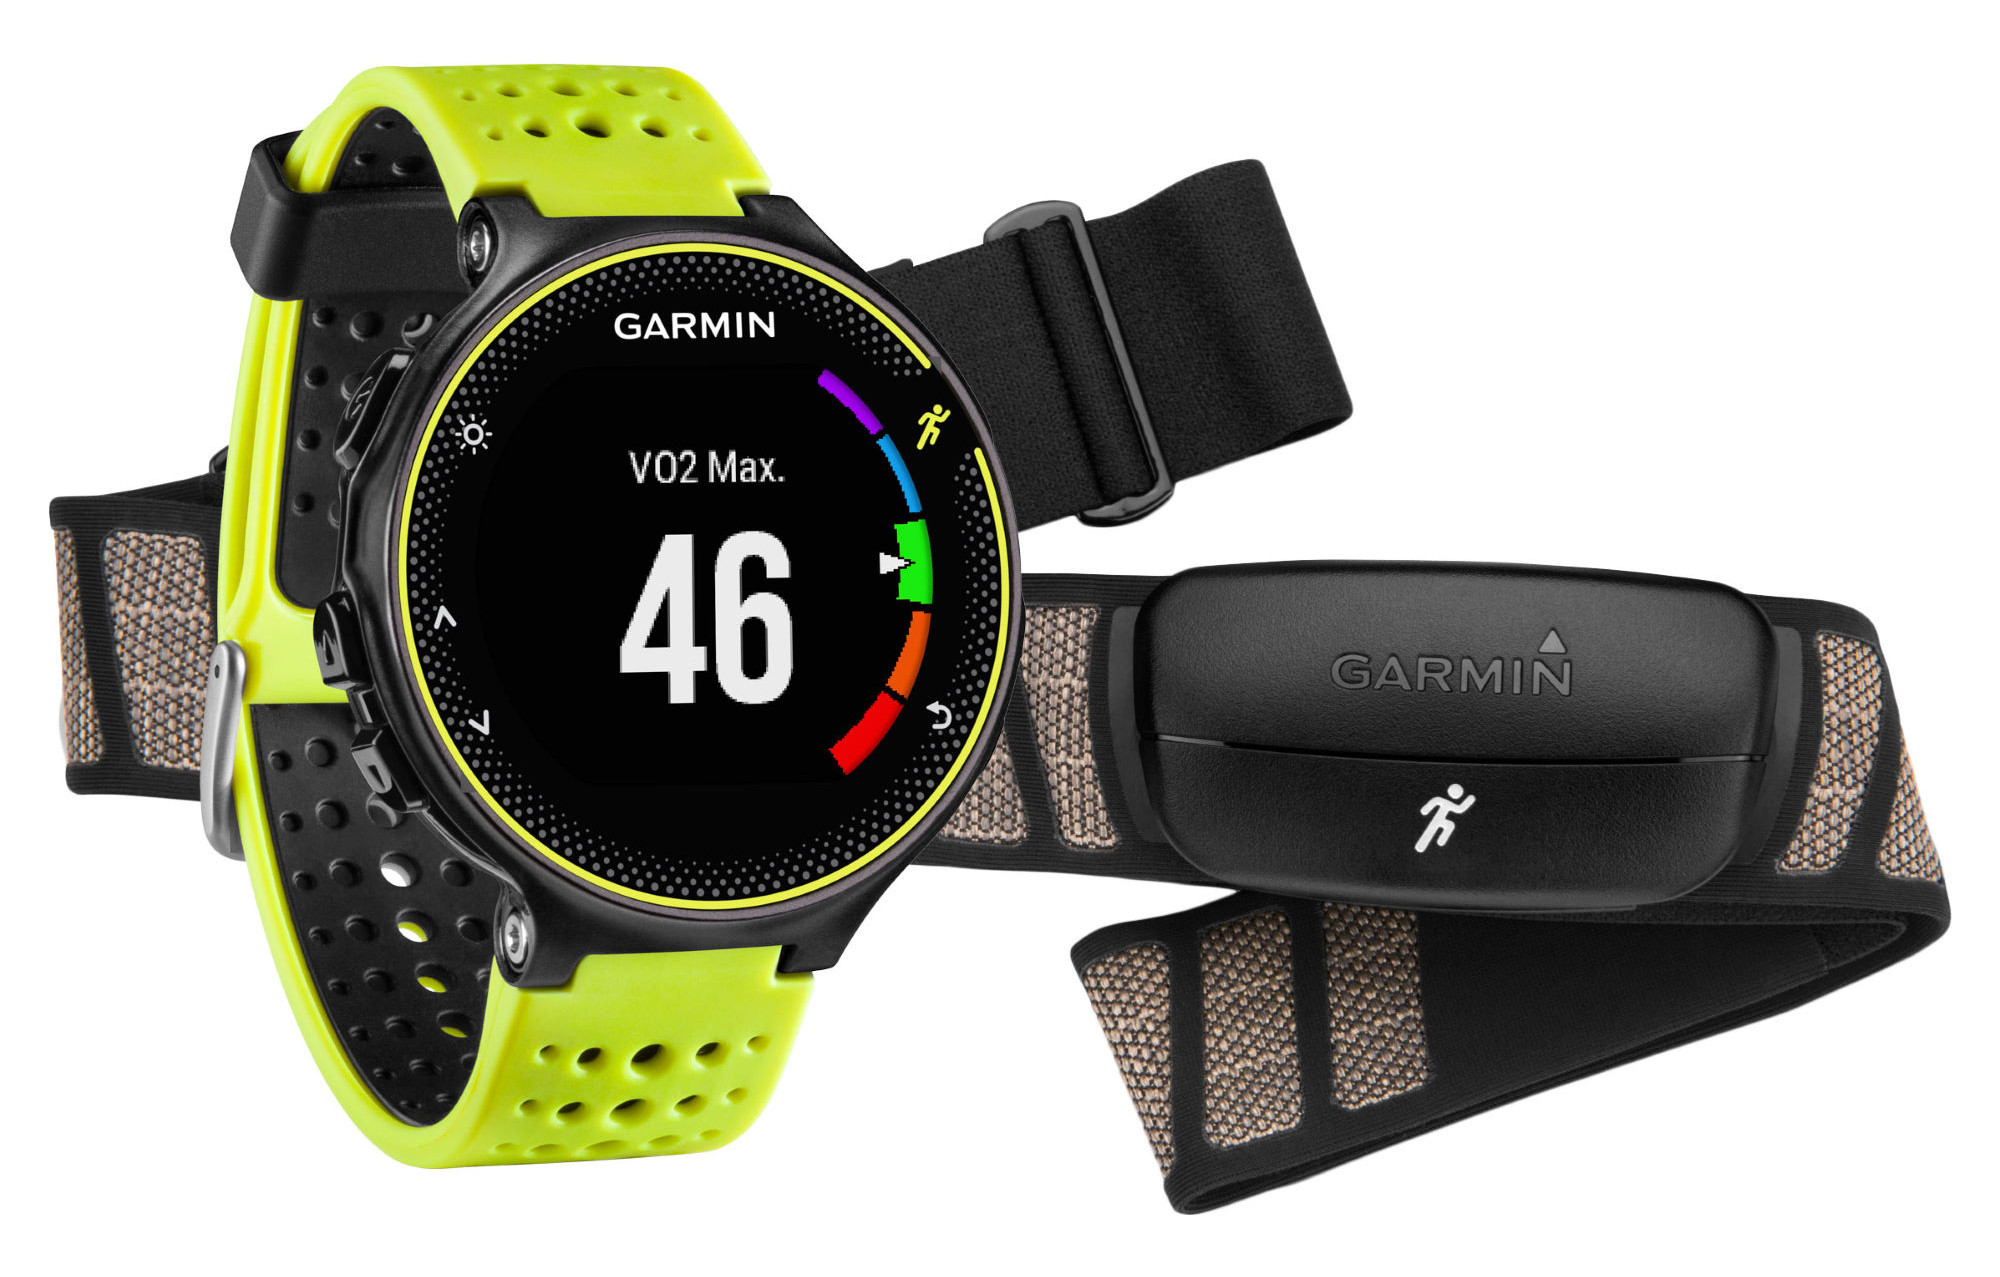 montre gps garmin forerunner 230 hrm noir jaune. Black Bedroom Furniture Sets. Home Design Ideas